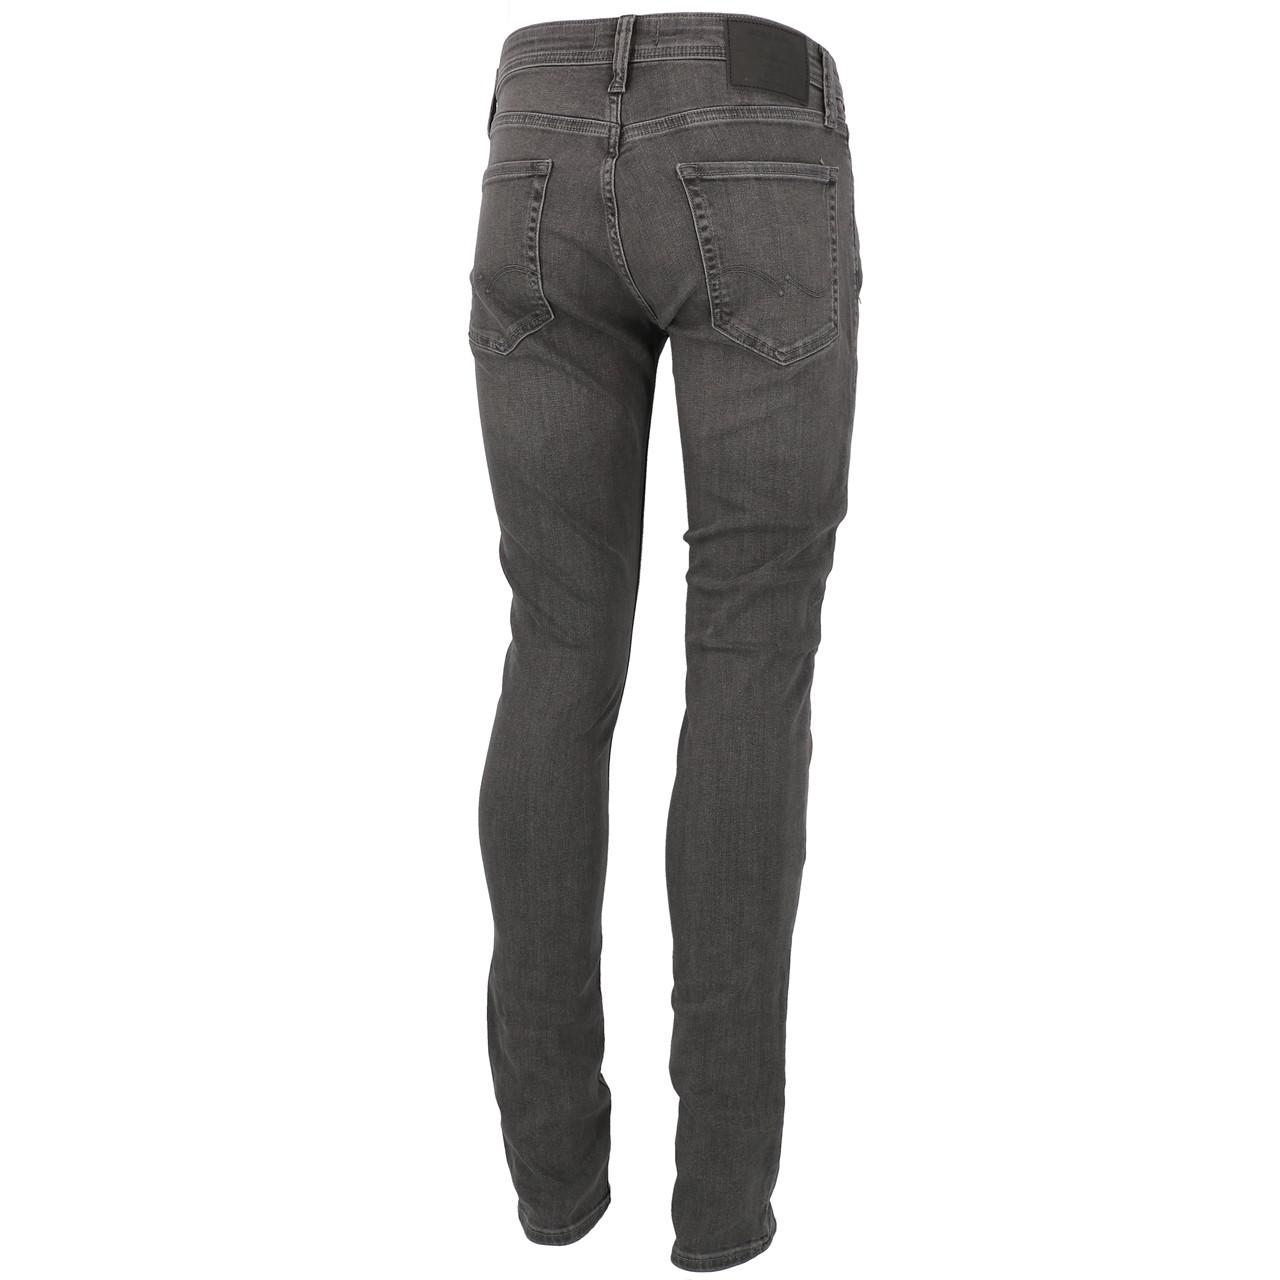 Jeans-Pants-Jack-and-jones-Liam-32-Grey-Denim-Jeans-Grey-19911-New thumbnail 5